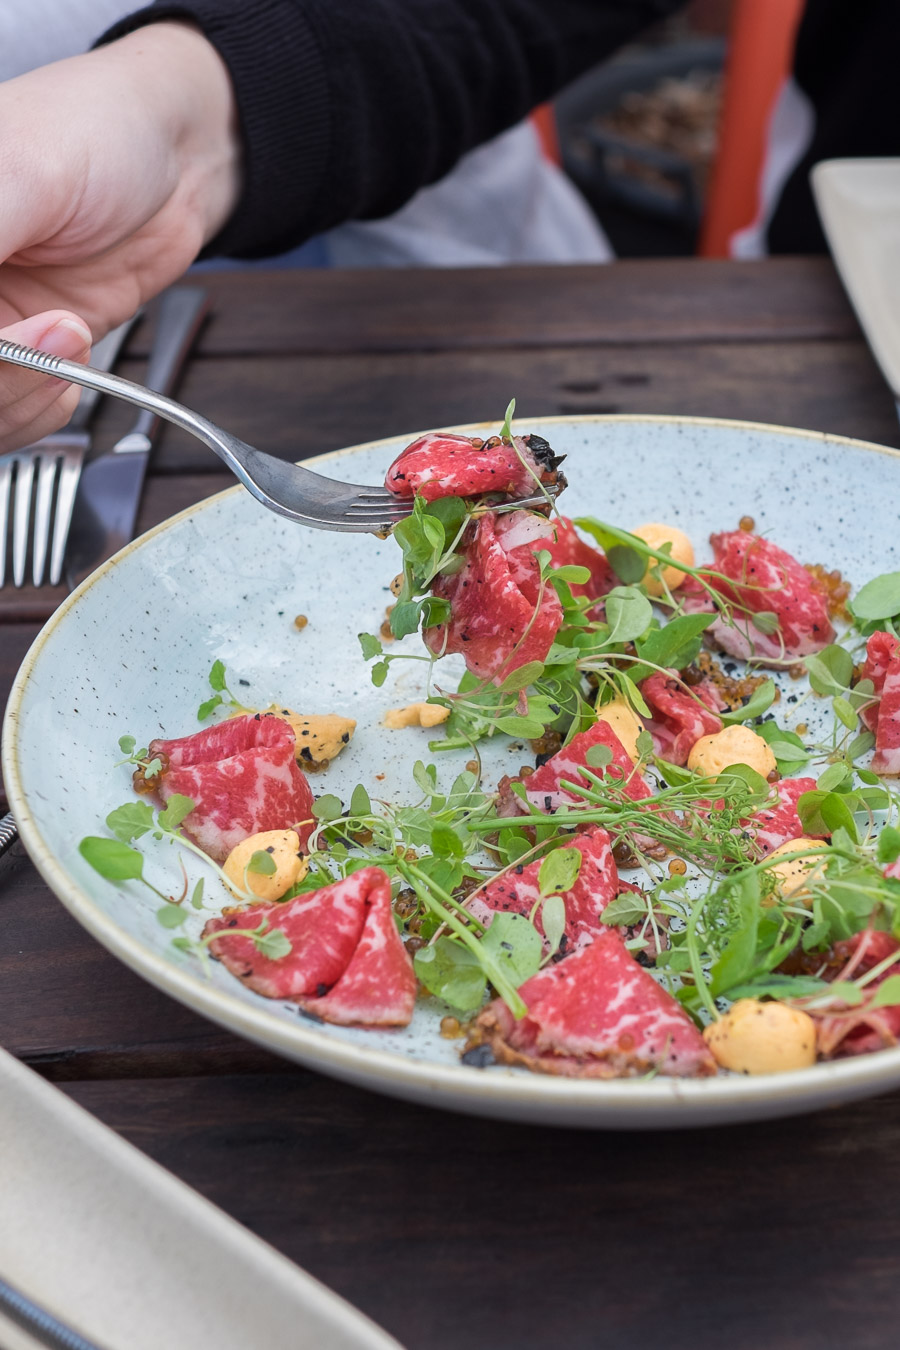 Beef carpaccio - Ranger Valley (NSW) porterhouse rubbed in spice (coriander seed, paprika, pink and black peppercorns), seared and shaved, served with harissa cream, pea shoots and Pedro Ximenez caviar.